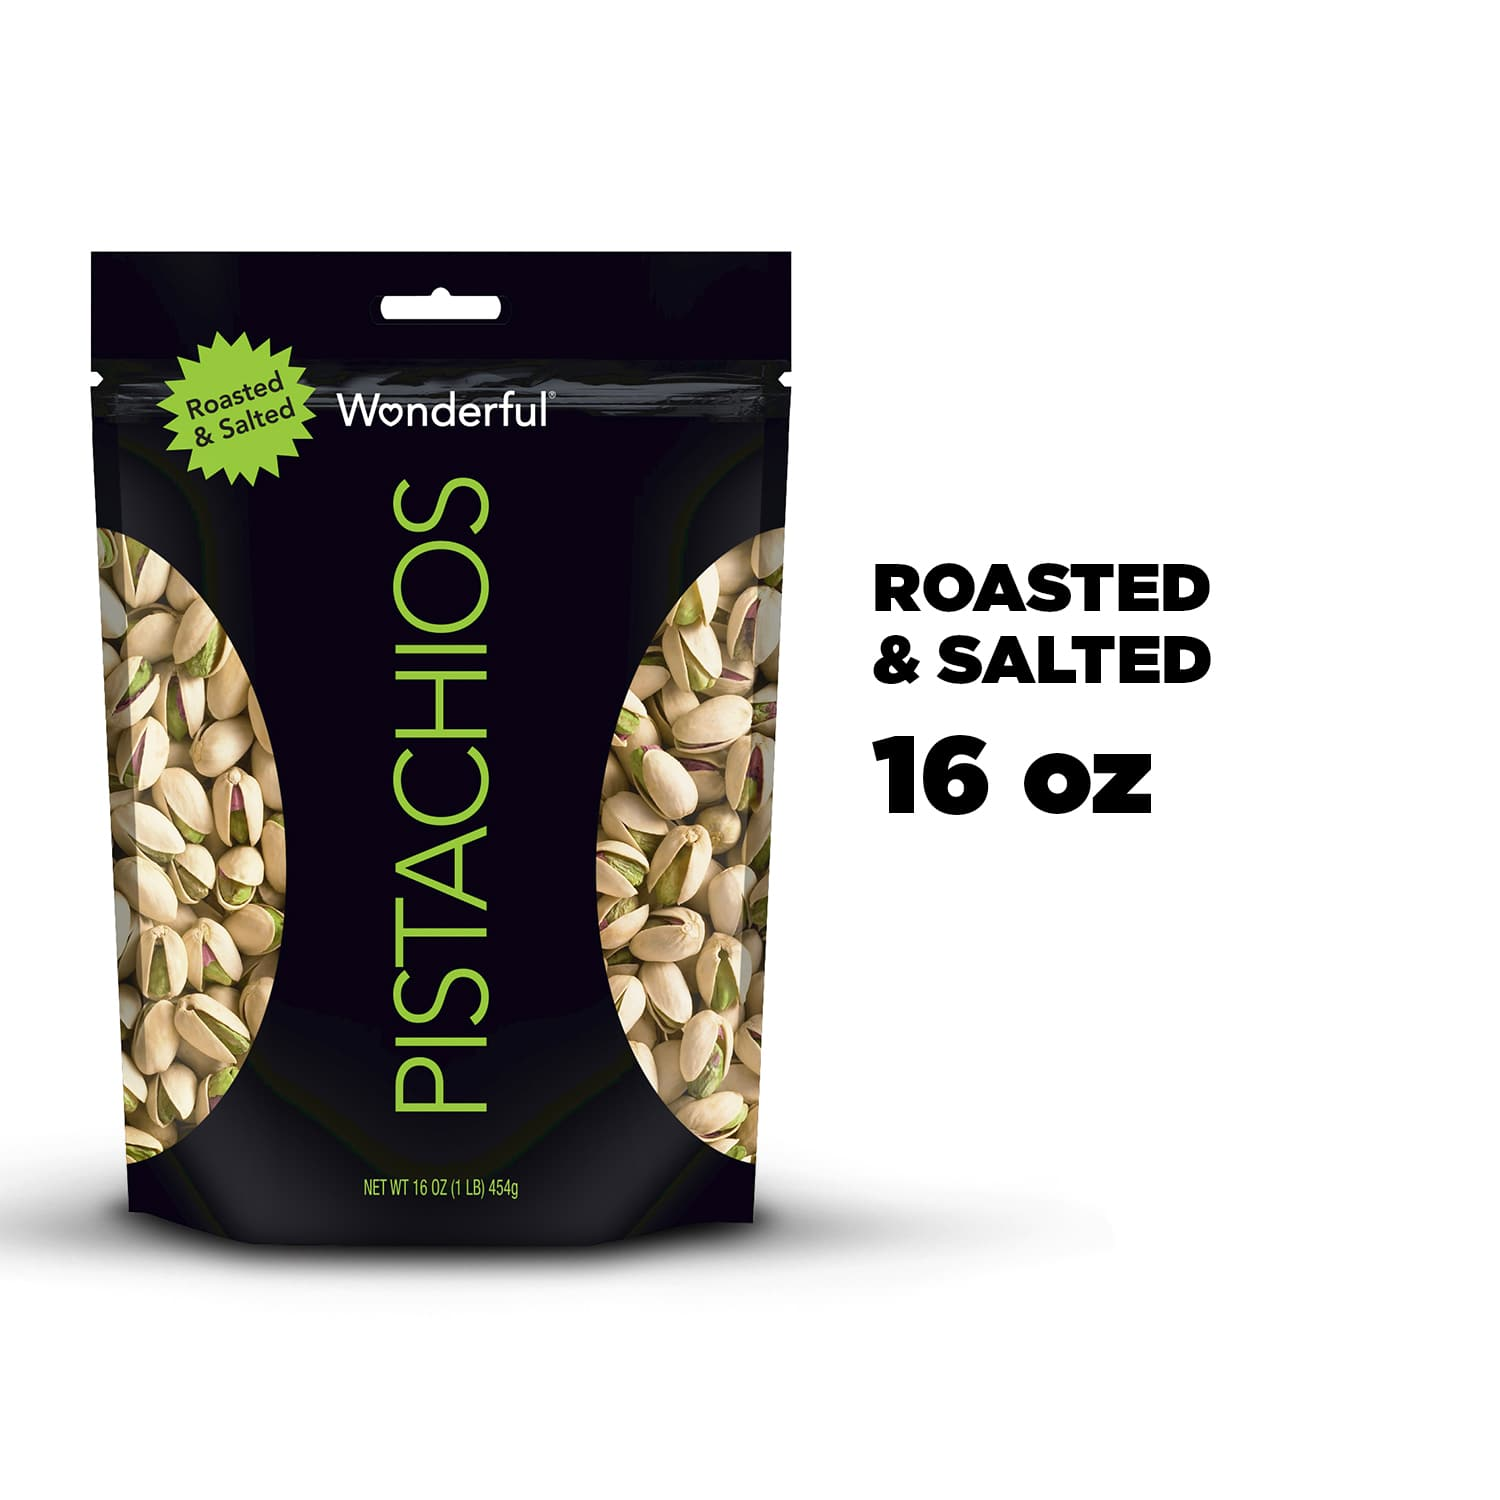 Wonderful Roasted & Salted Pistachios 16 Oz $5.25